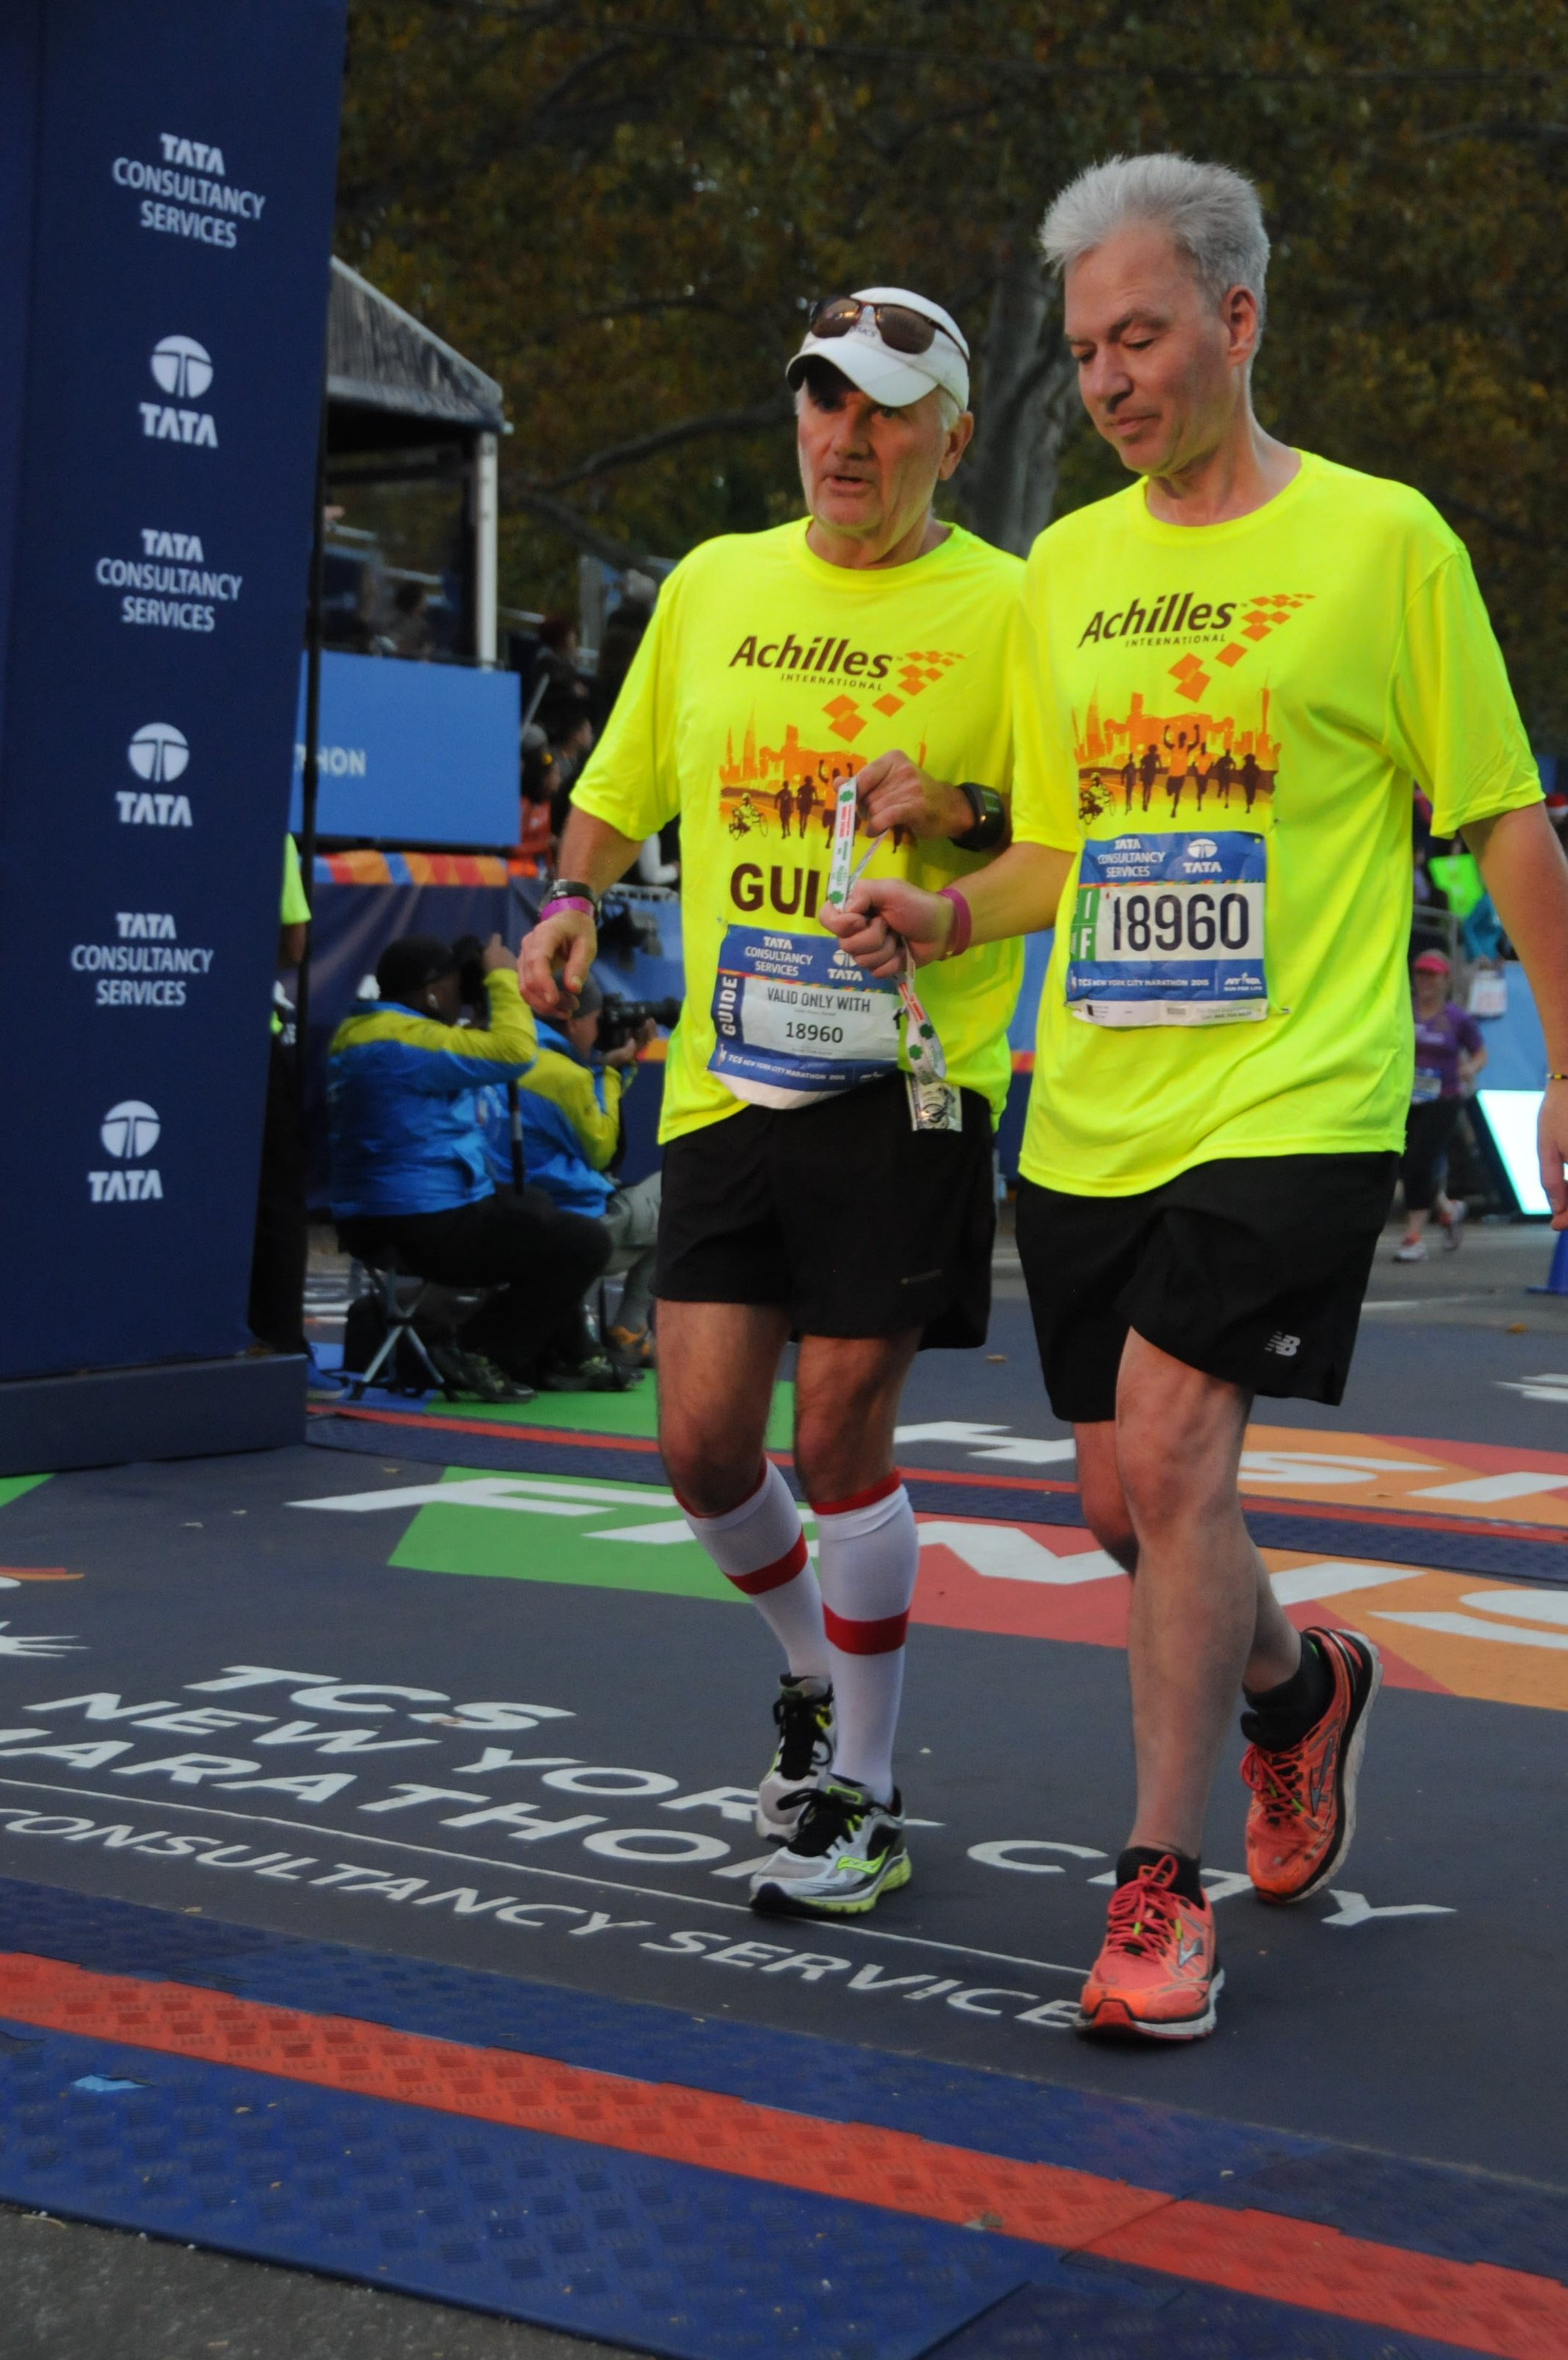 A male volunteer and a visually impaired athlete running together